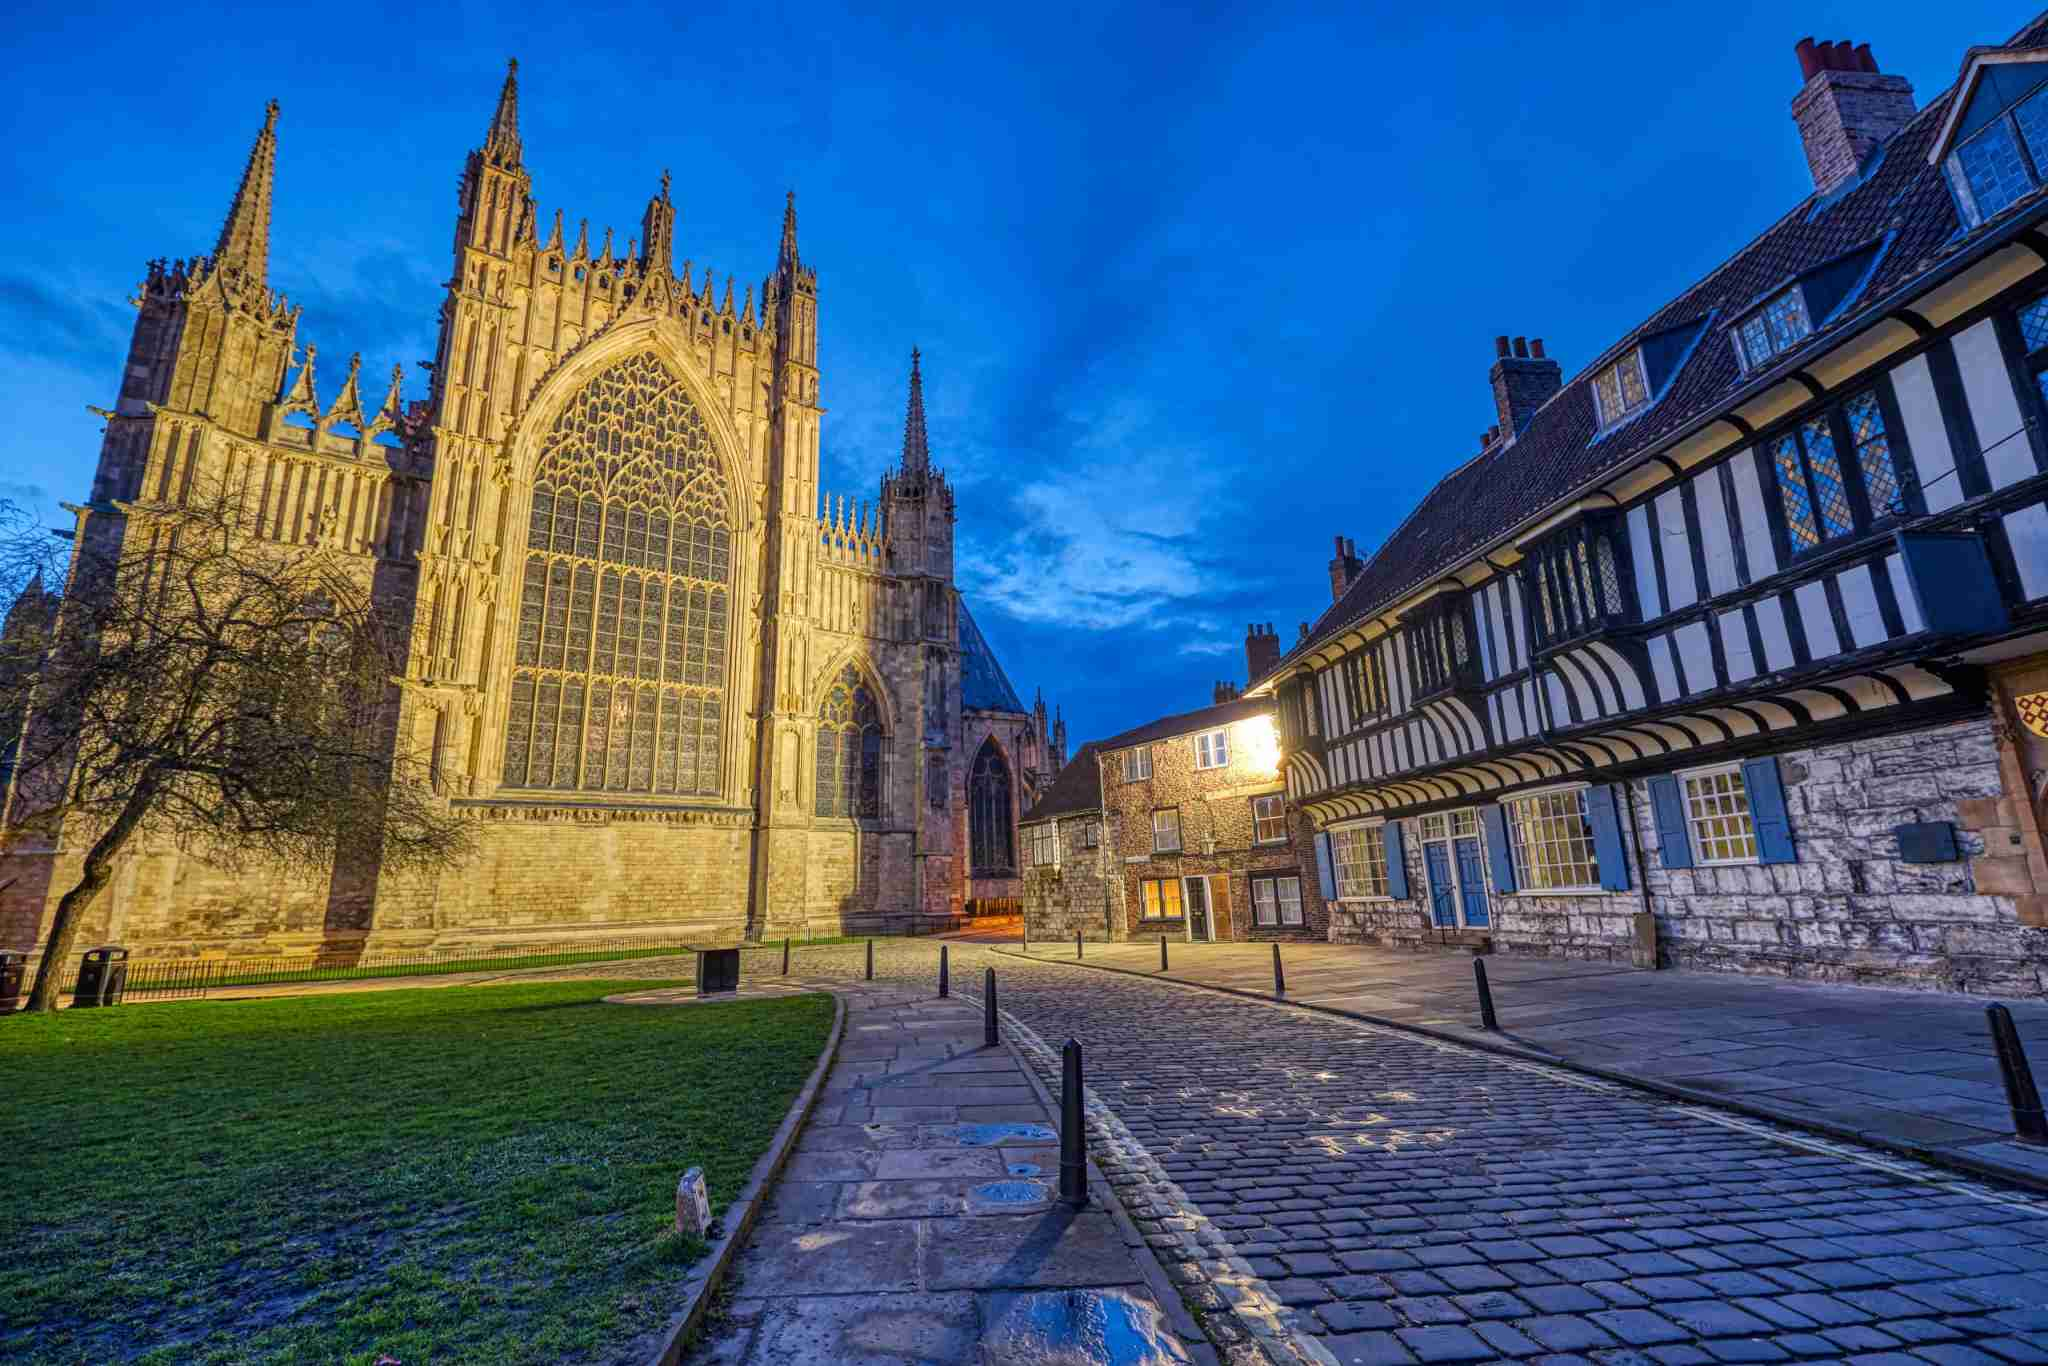 The backside of the York Minster and some half-timbered houses at dusk